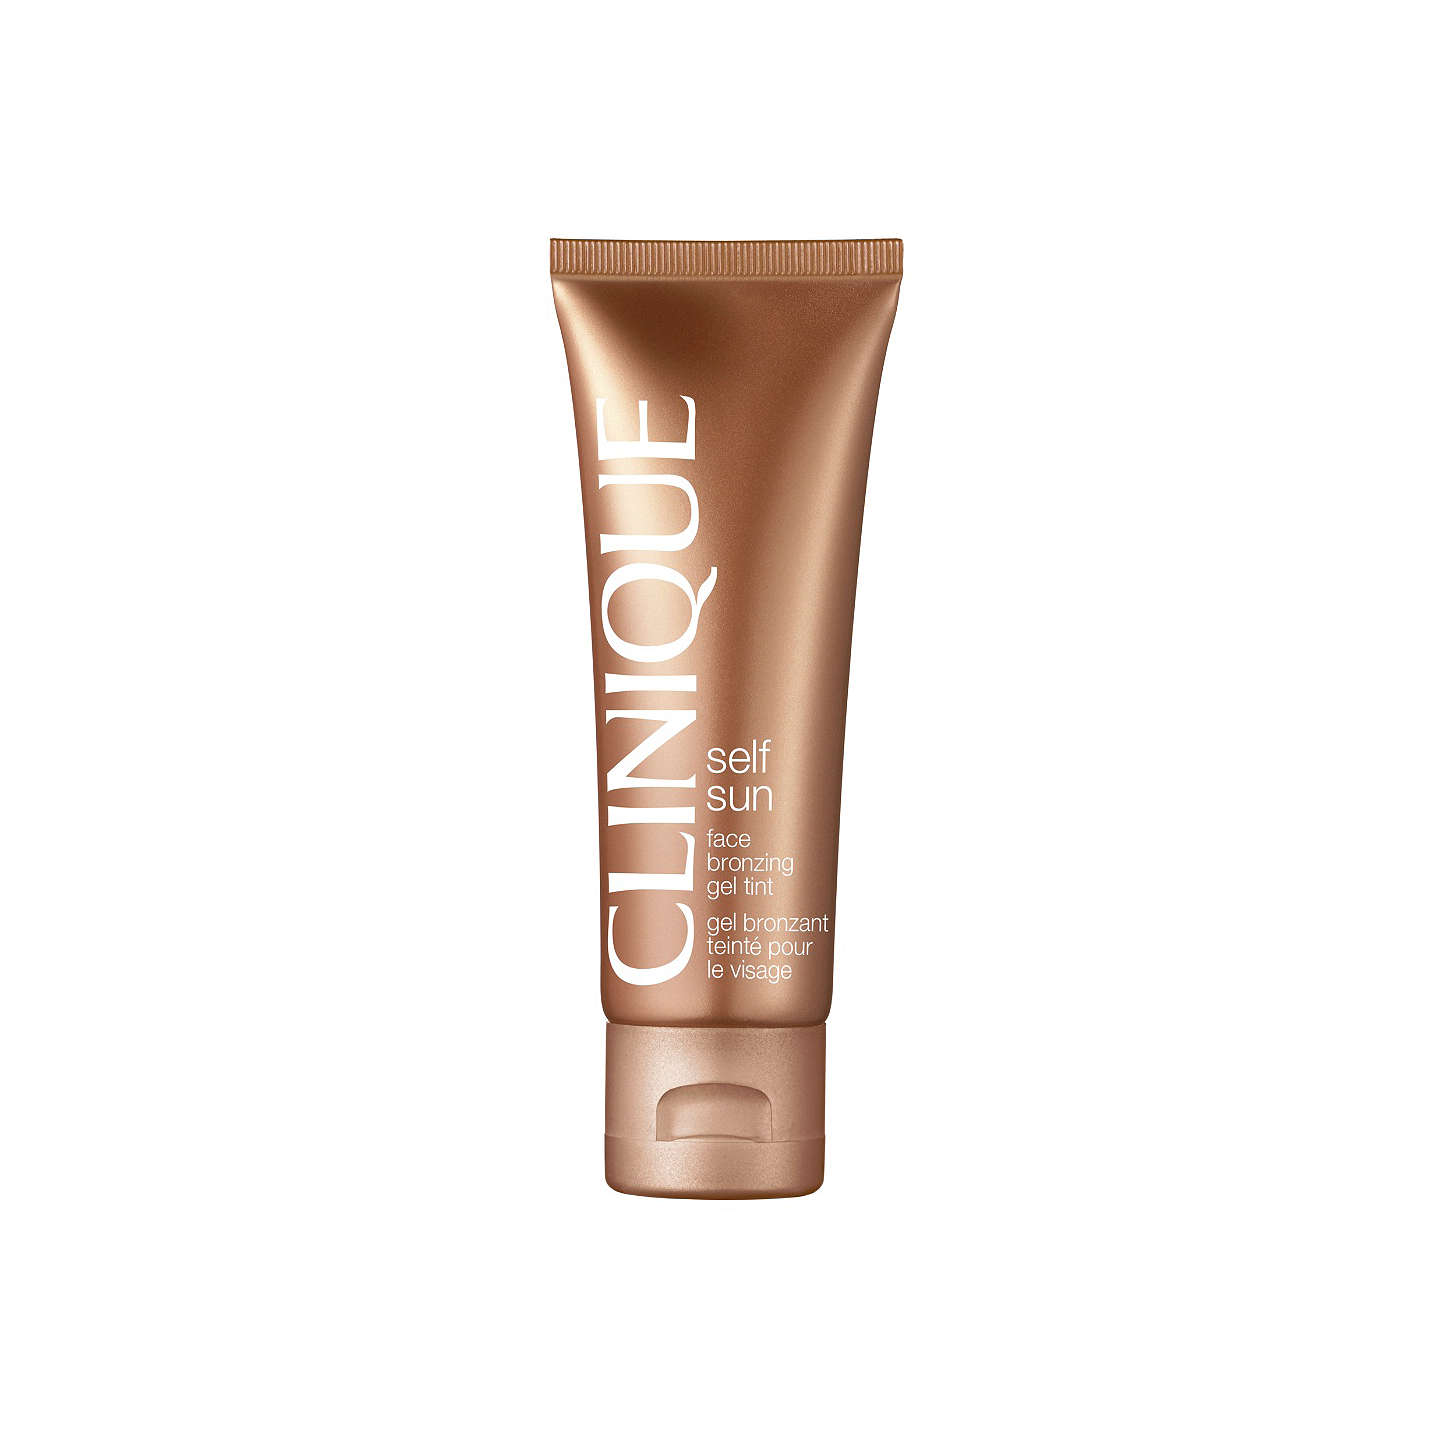 Clinique Body Cream Spf40 150ml At John Lewis: Clinique Face Bronzing Gel Tint, 50ml At John Lewis